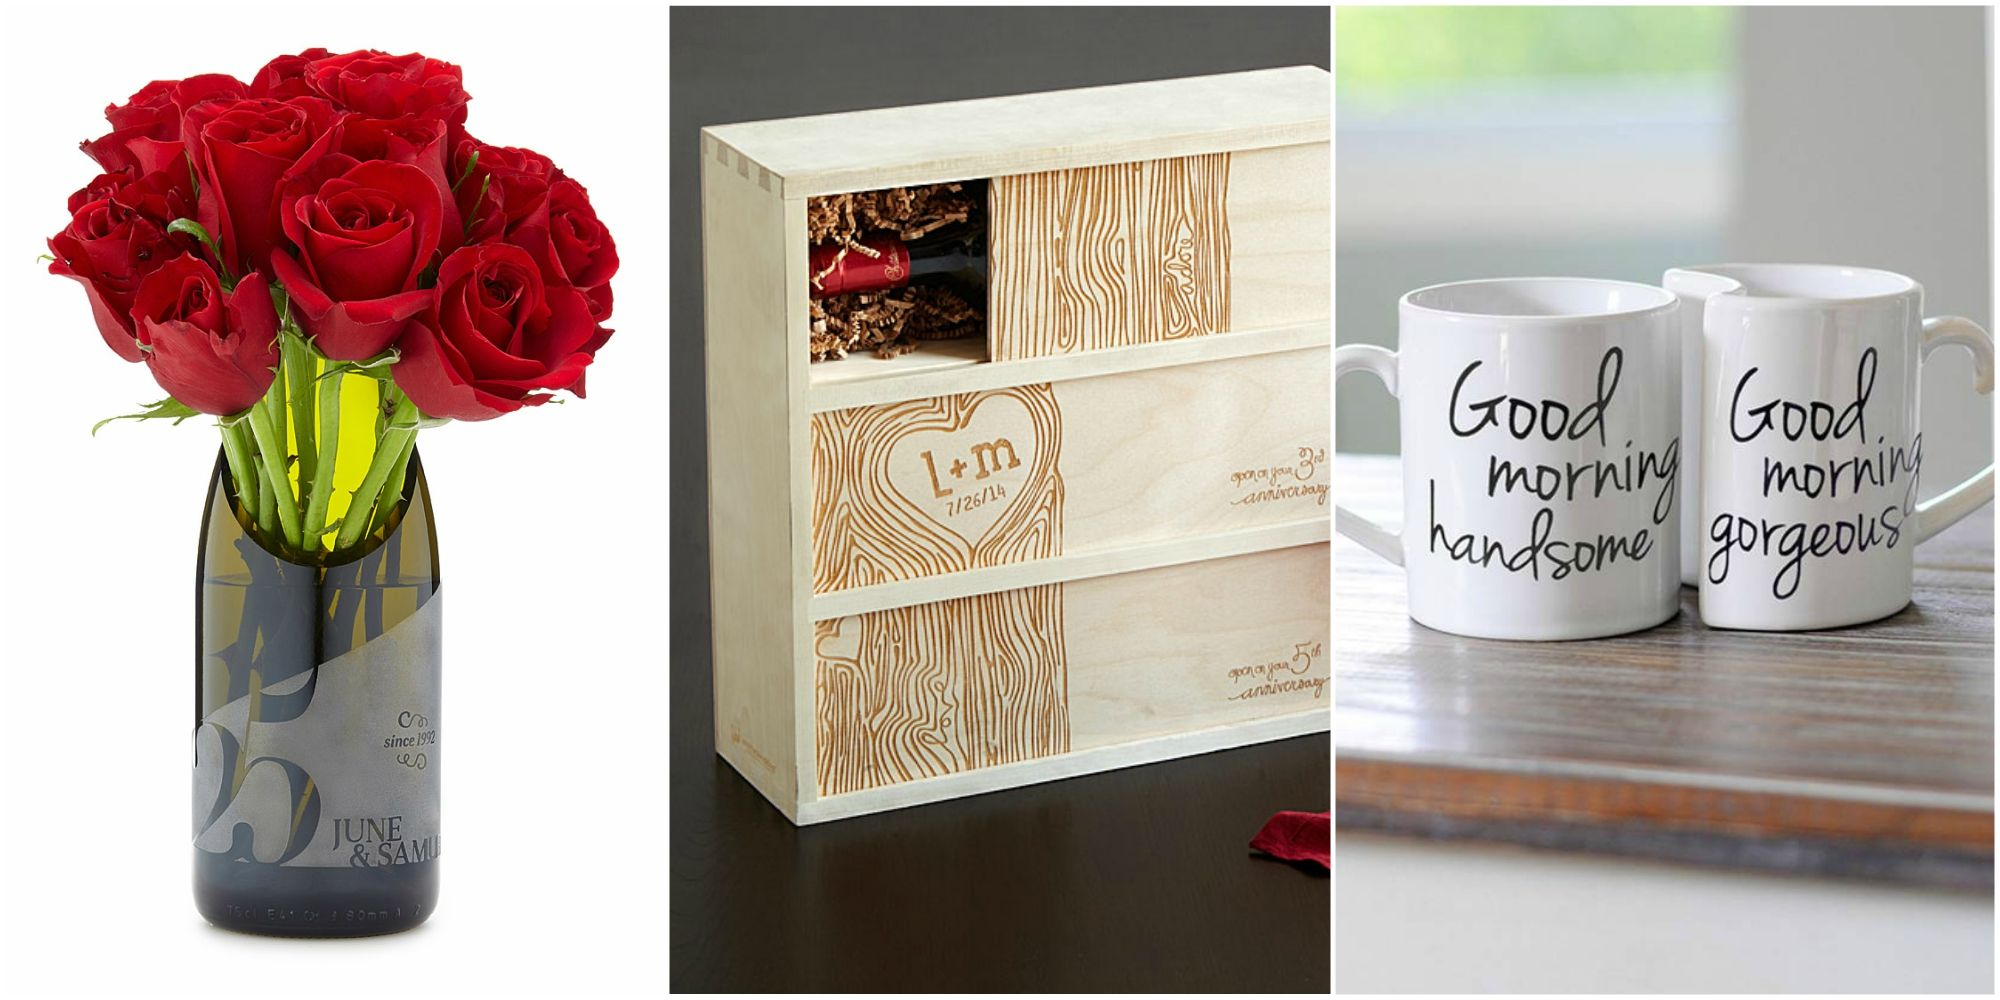 25 Best Anniversary Gift Ideas for Her - Unique Wedding Anniversary ...